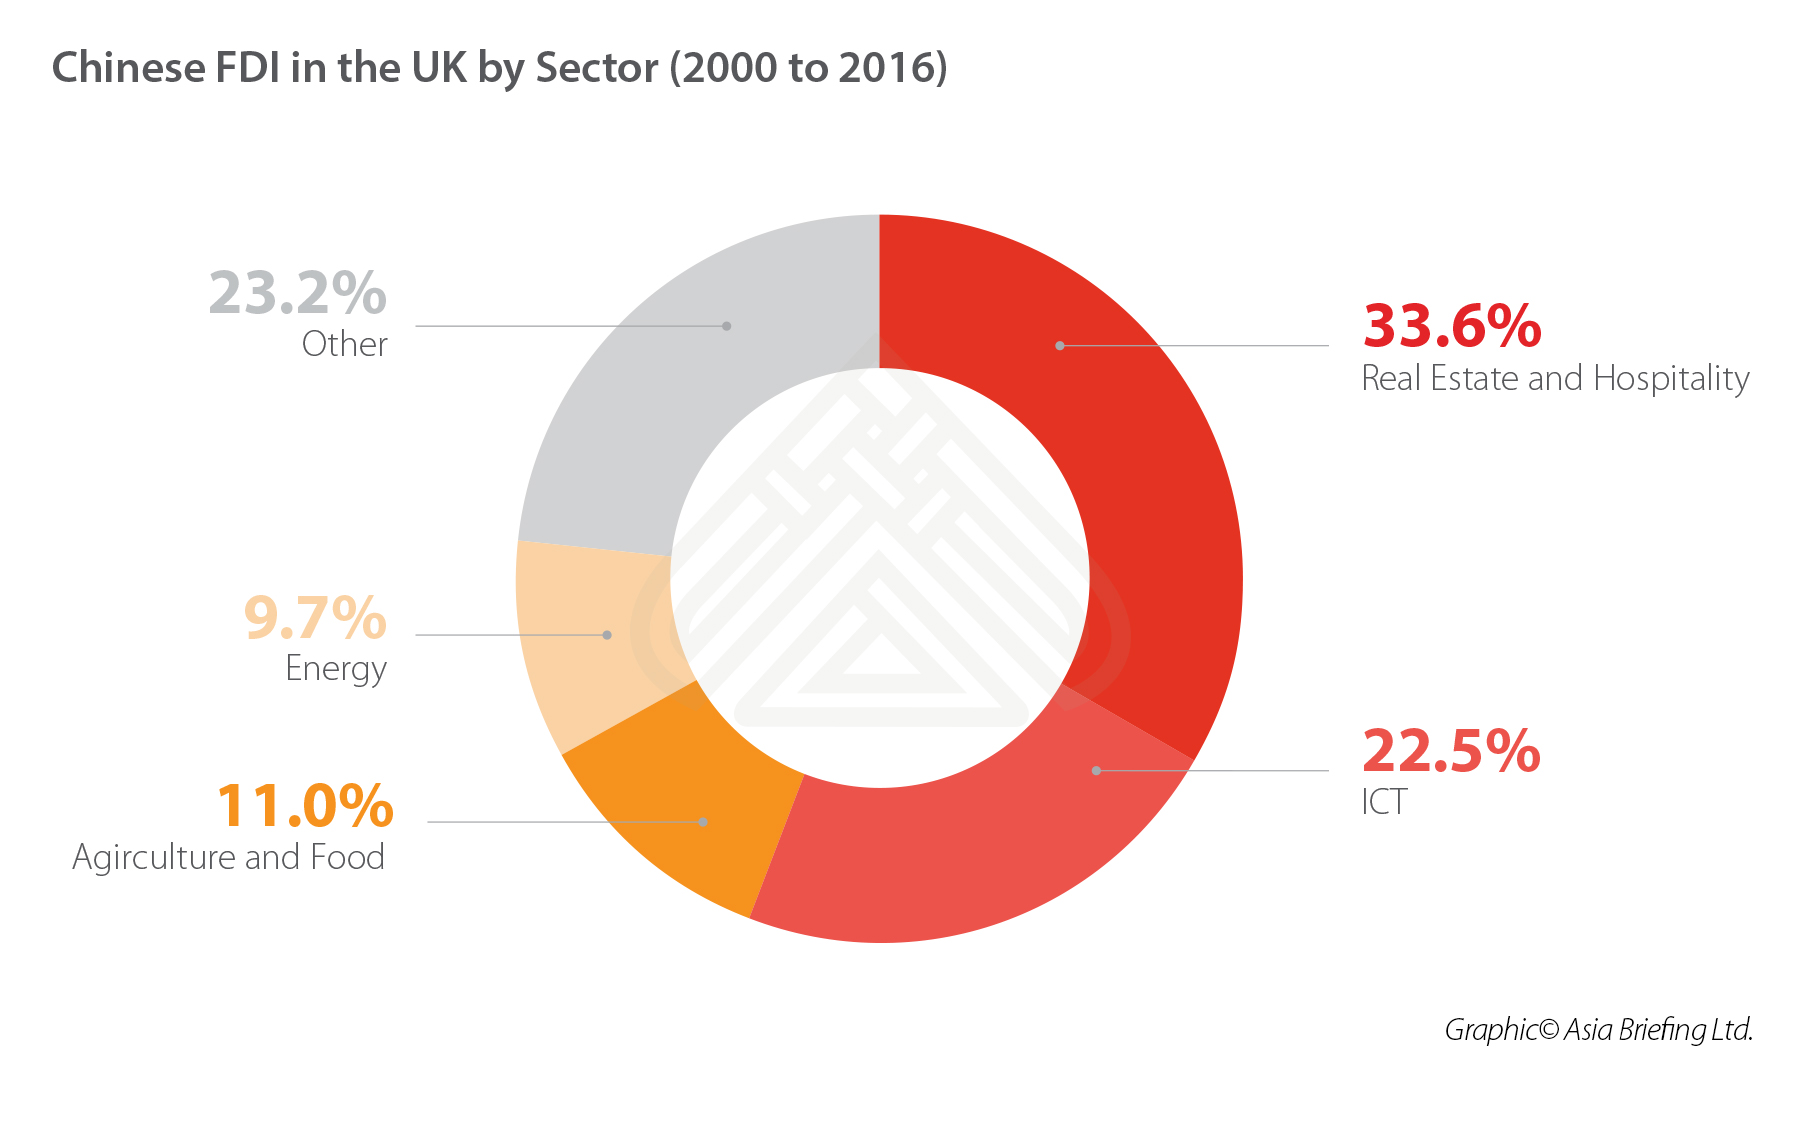 CHINA-UK-FD-SECTOR-WISE